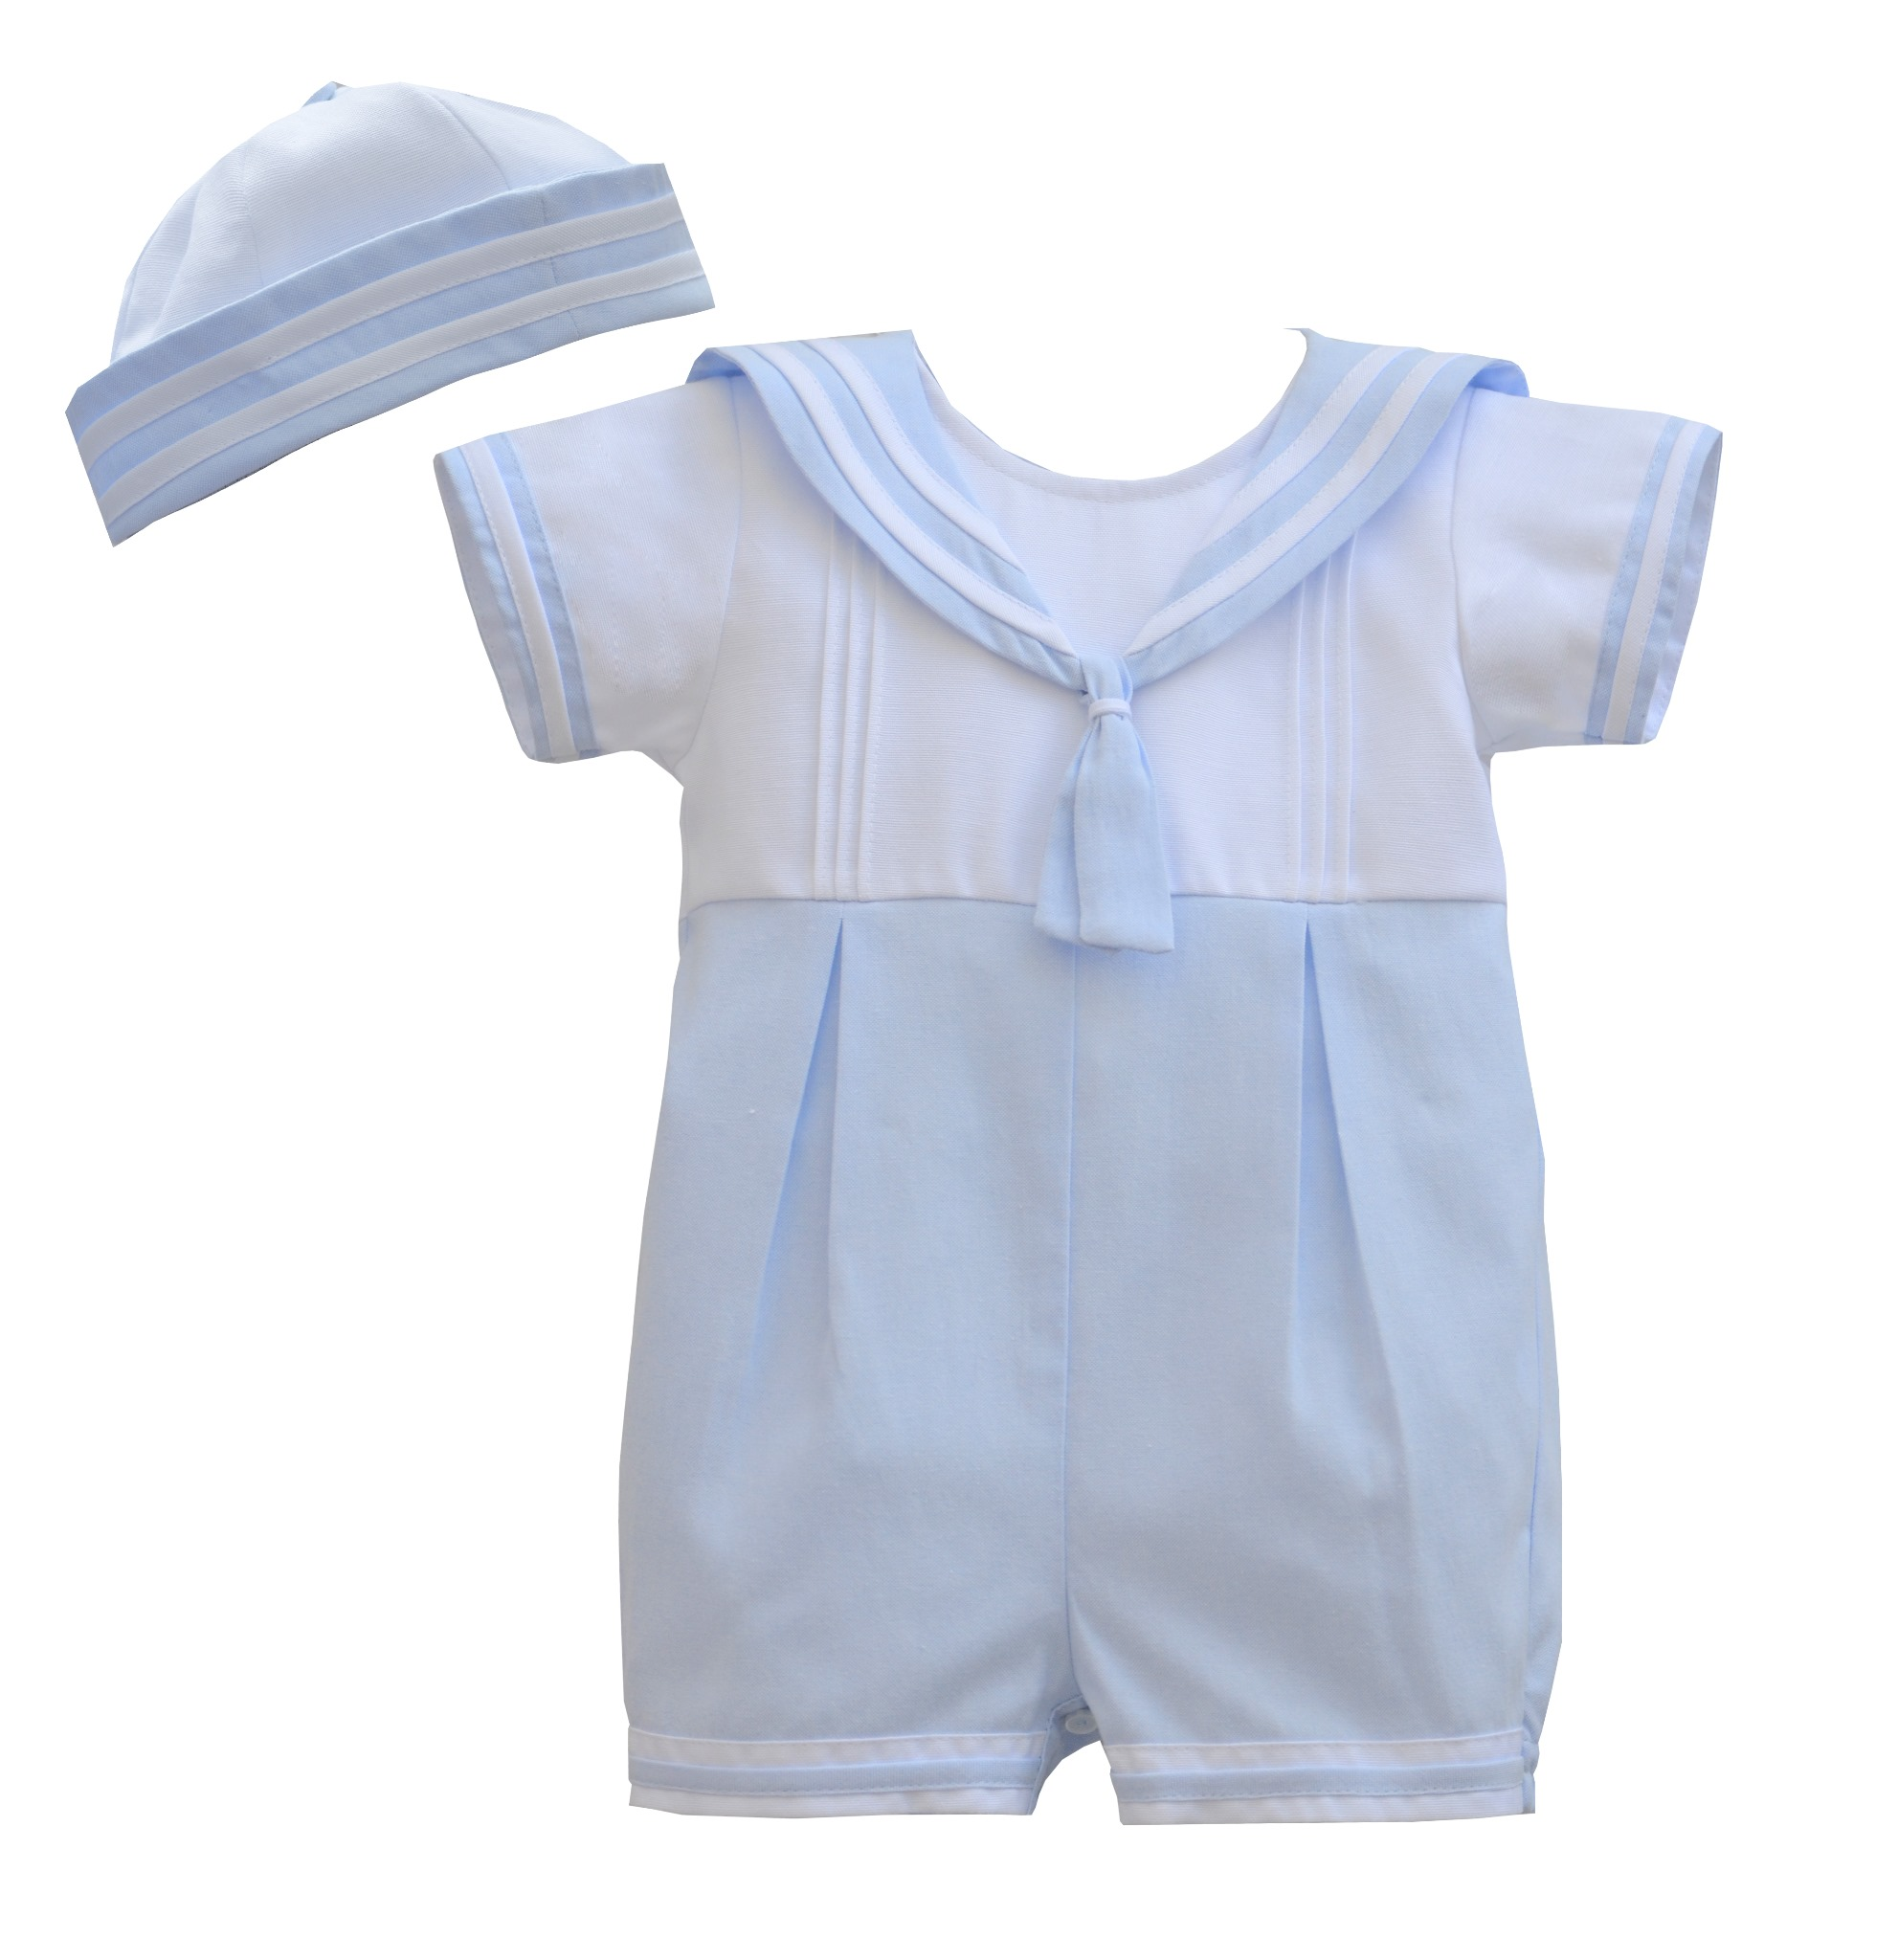 b49809011 An adorable nautical shortie set for baby boys by Pretty Originals, made  from lightweight cotton